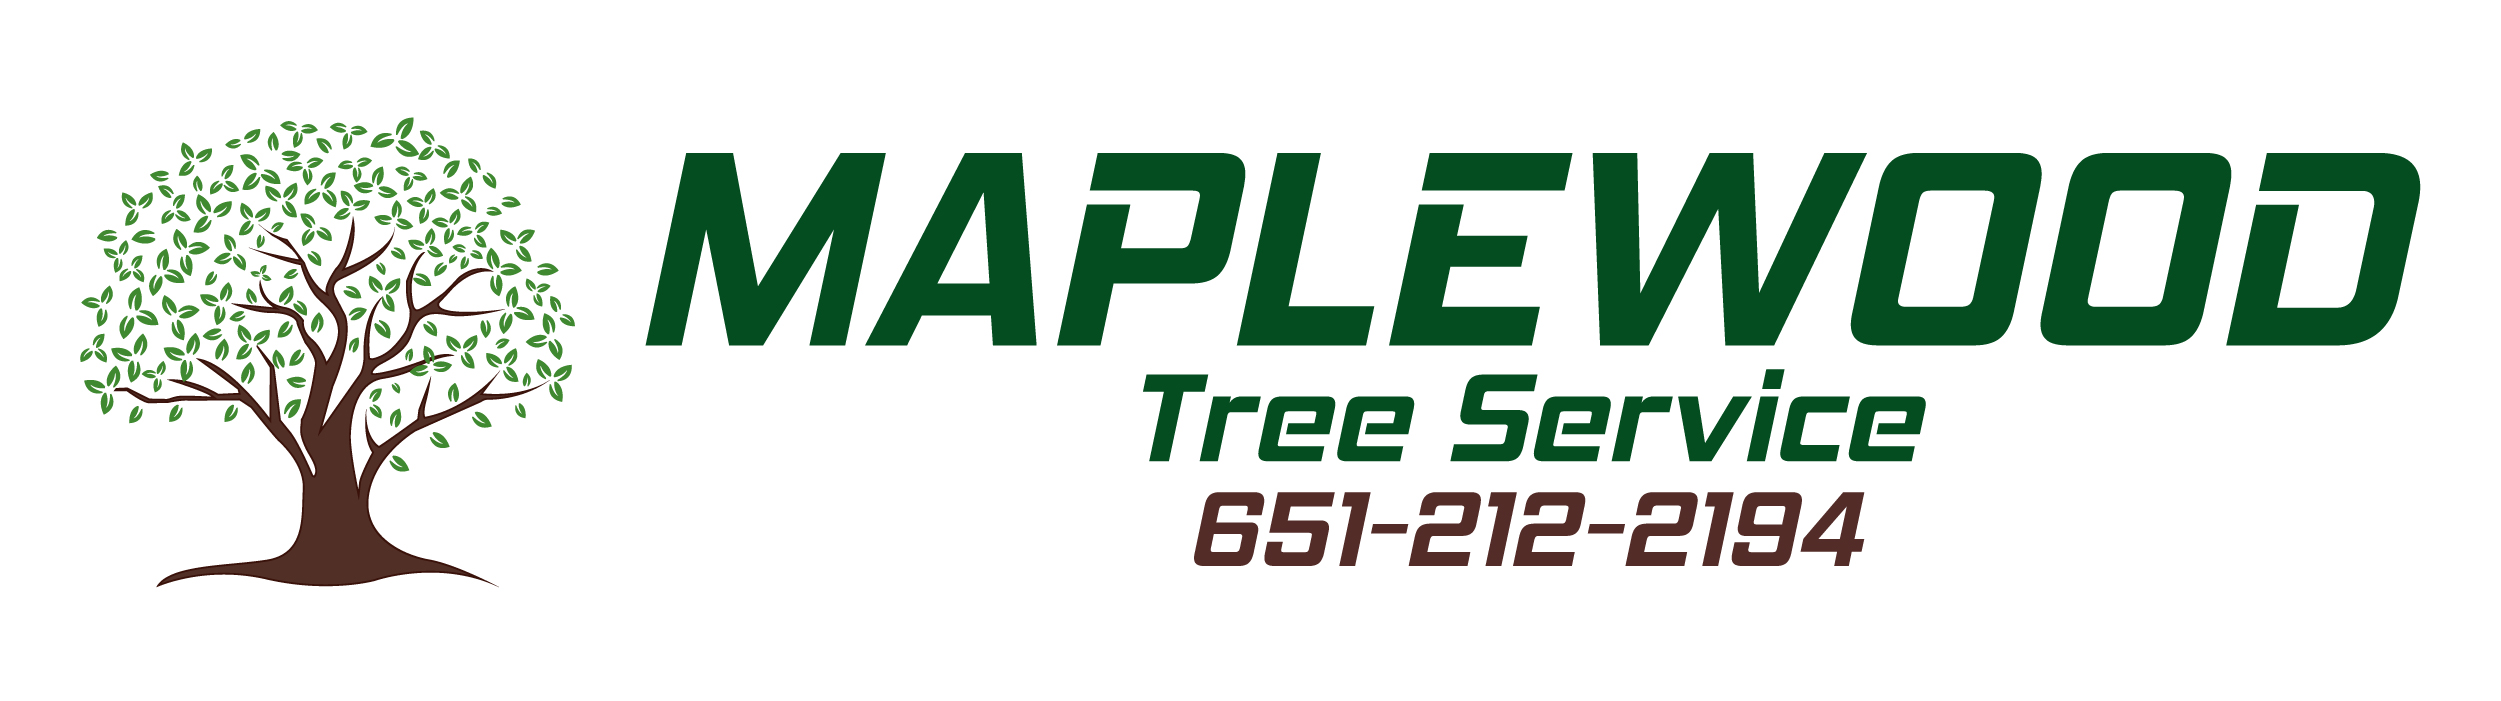 Midwest Tree Removal's Logo